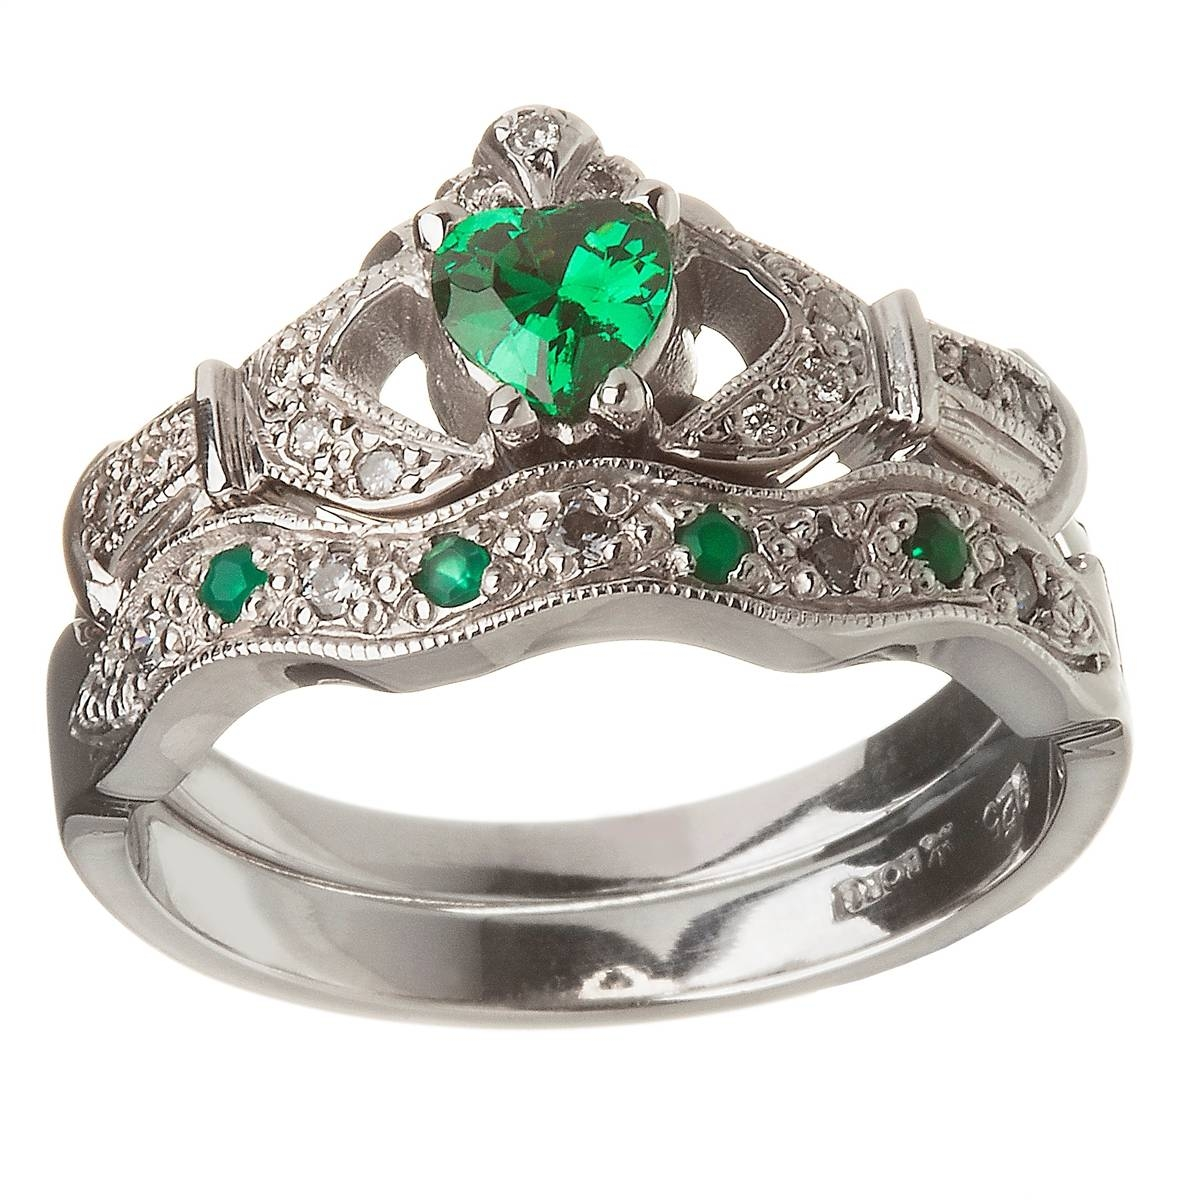 14K White Gold Emerald Set Heart Claddagh Ring & Wedding Ring Set With Regard To Diamond Claddagh Engagement Rings (View 1 of 15)